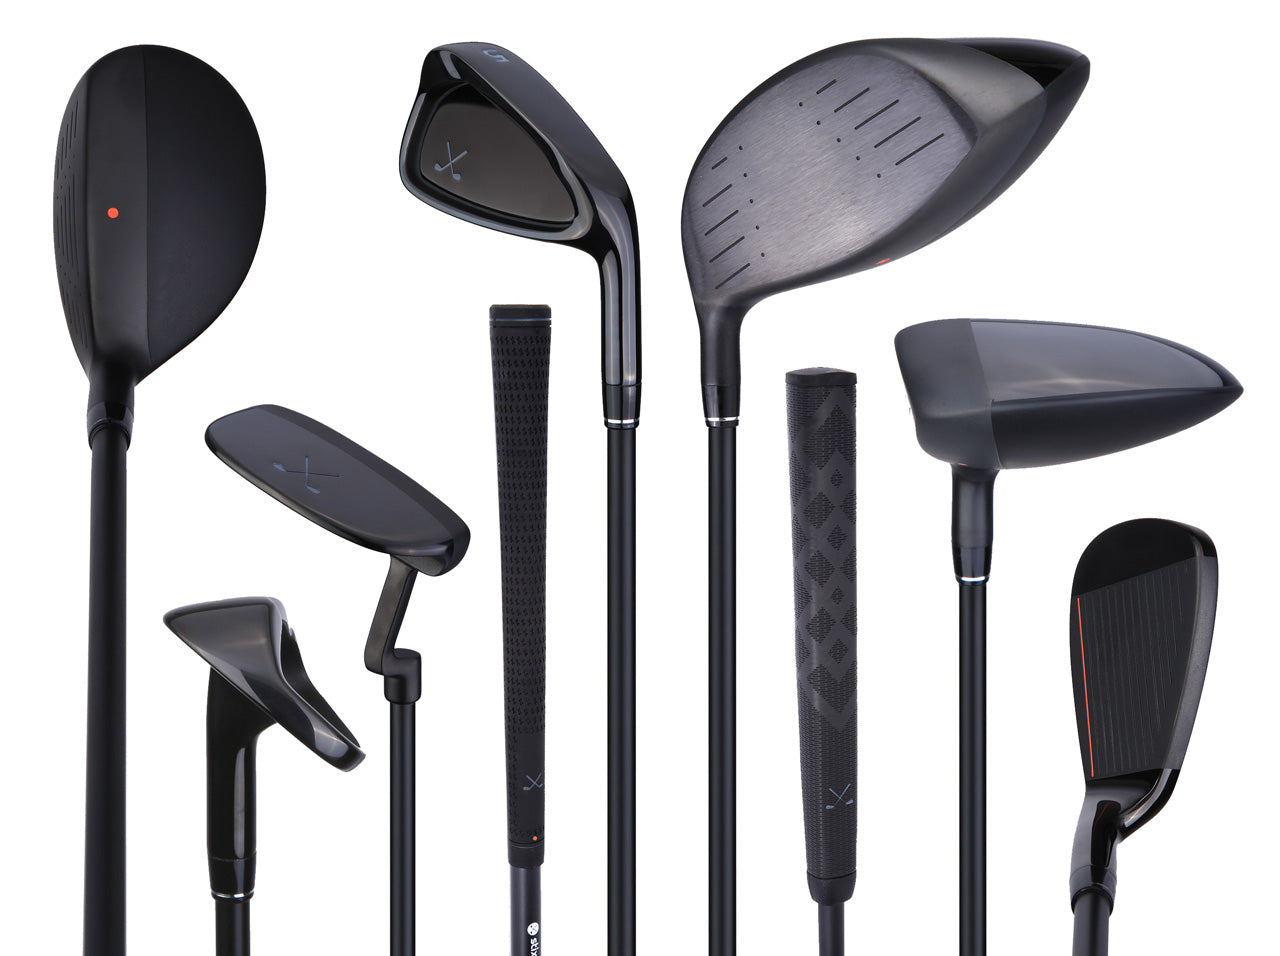 All Black 12-Piece Complete Golf Club Set | stix - Stix Golf